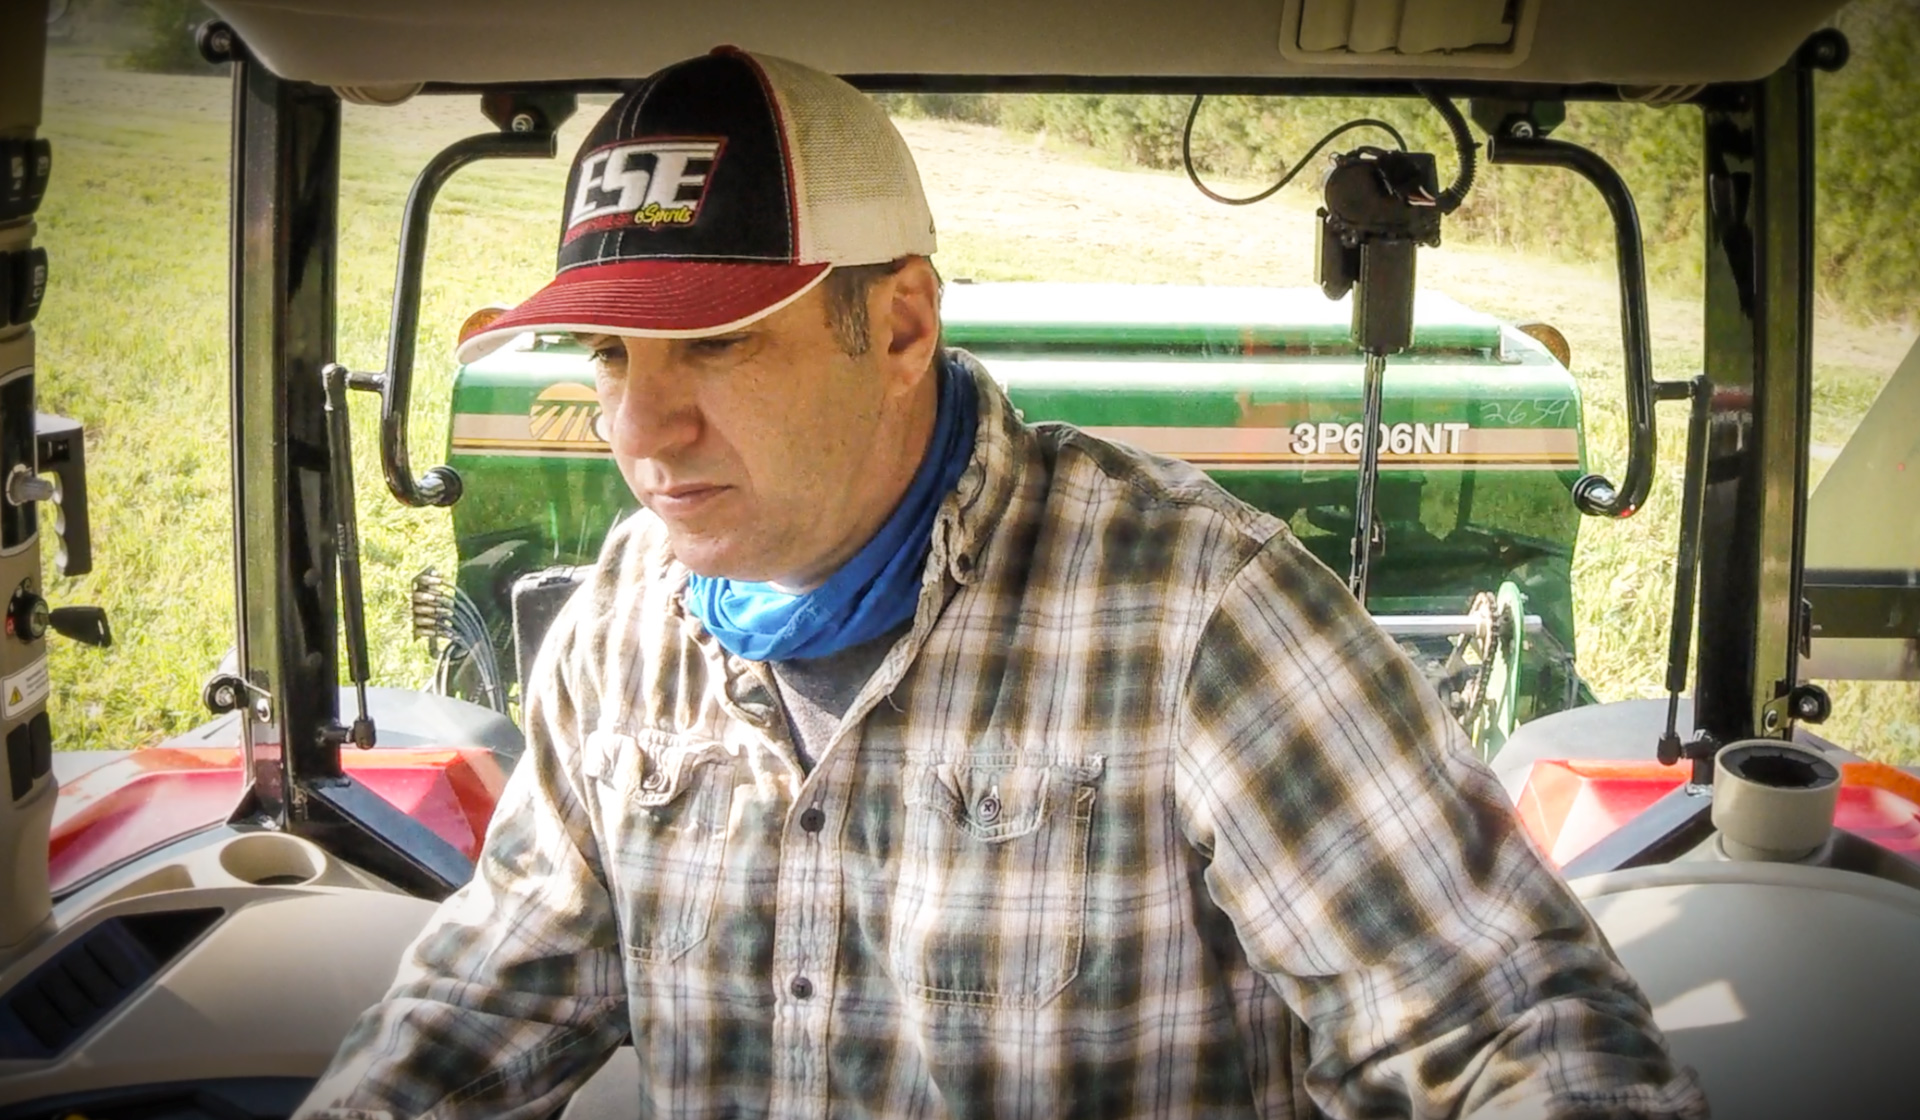 In the cab of the MF4707 with Sadler.